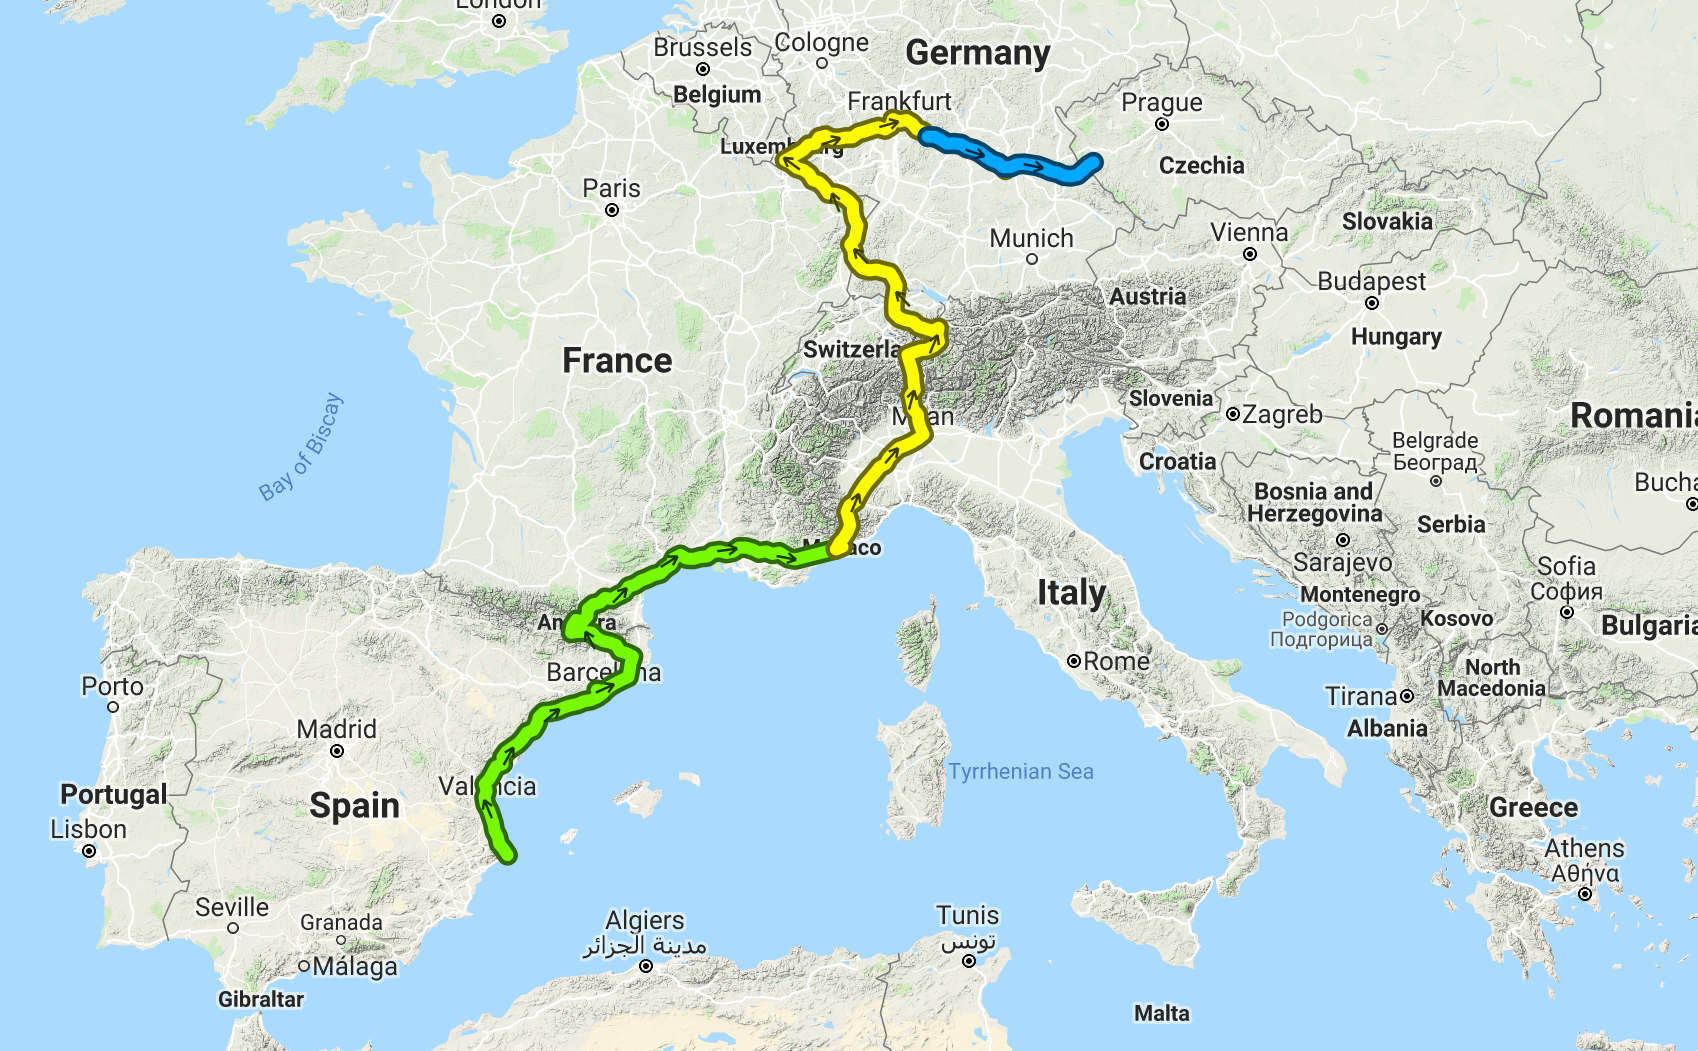 Progress from Spain to Germany in the least direct route